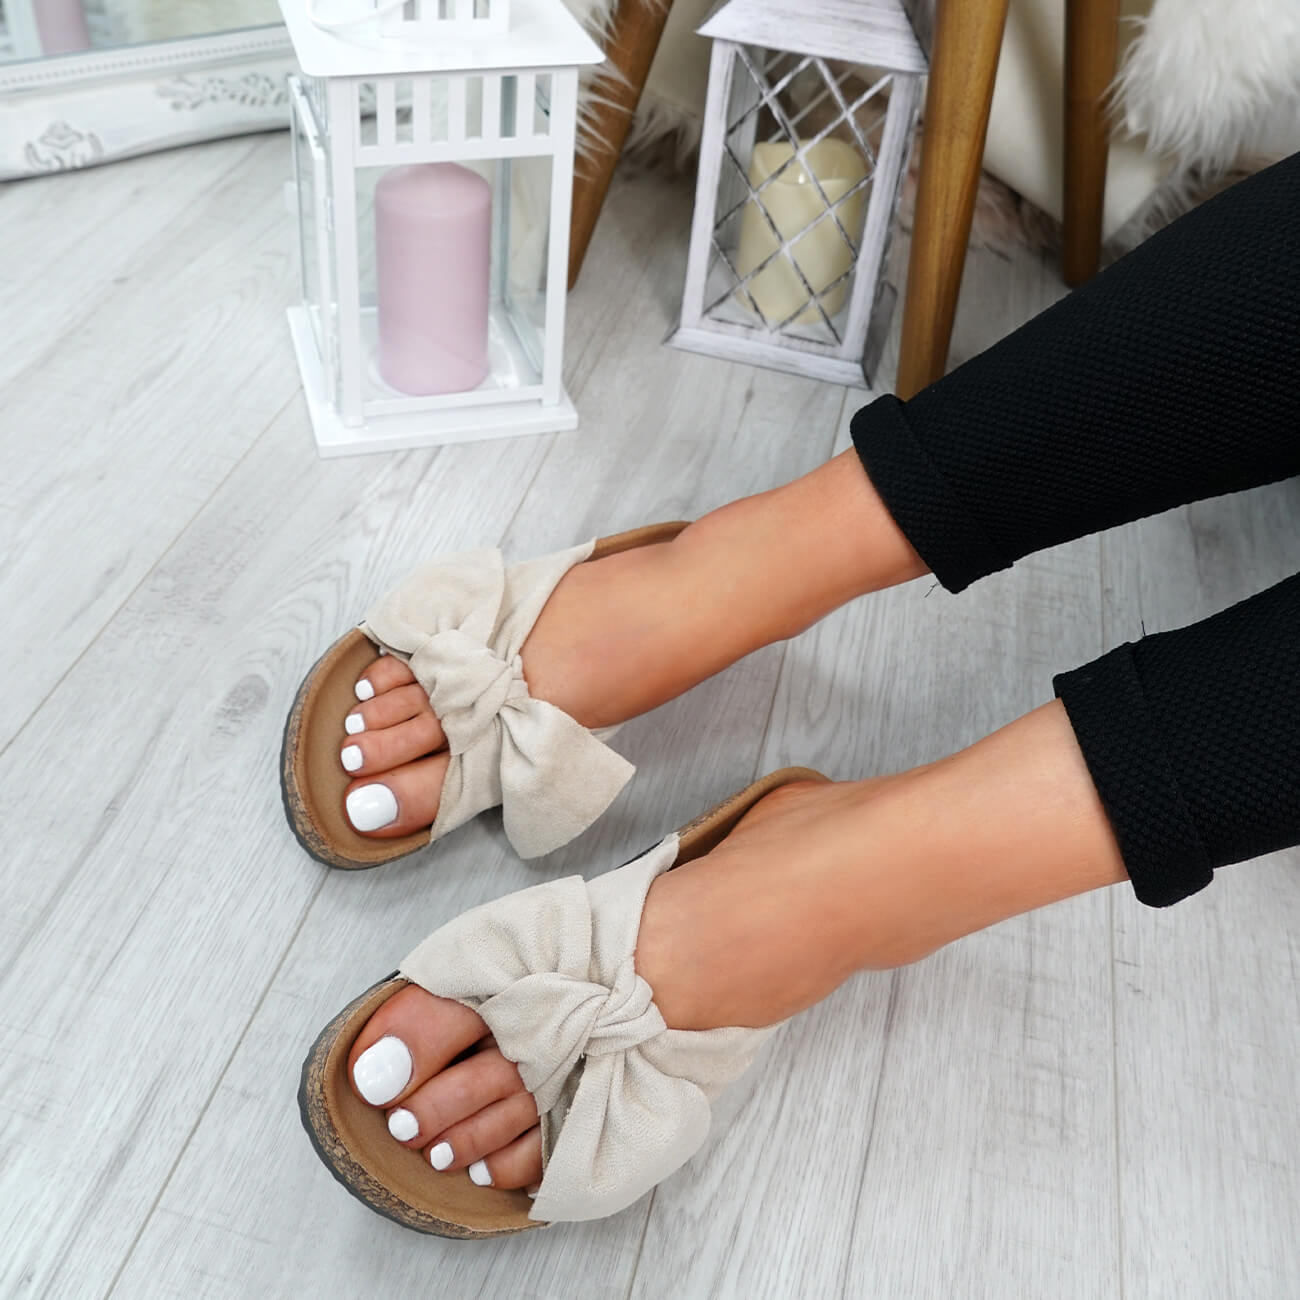 WOMENS-LADIES-SLIP-ON-FLAT-SANDALS-BOW-SLIDERS-SUMMER-CASUAL-SHOES-SIZE thumbnail 8